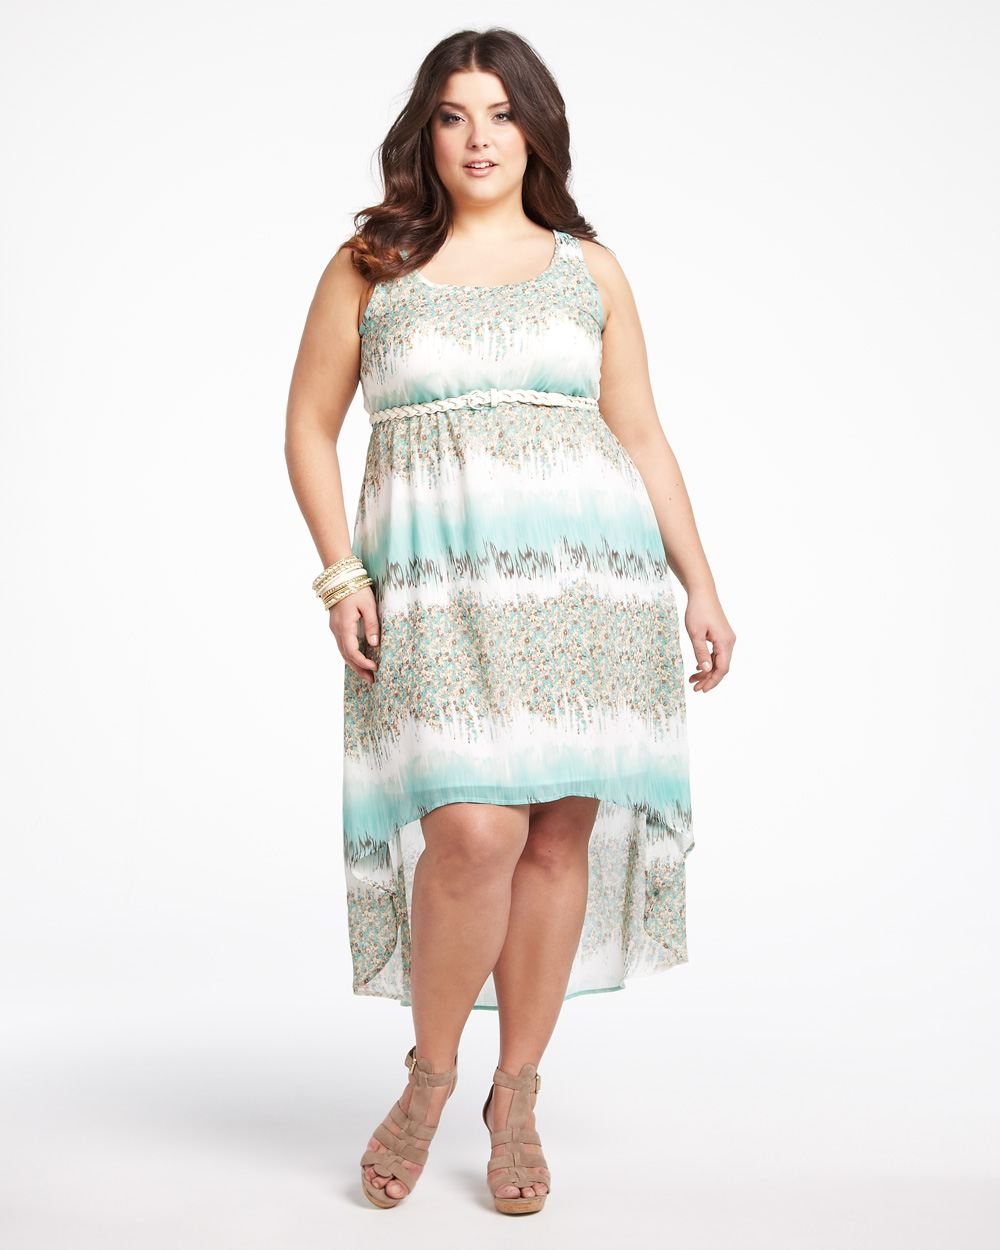 Plus Size High Low Dresses | DressedUpGirl.com